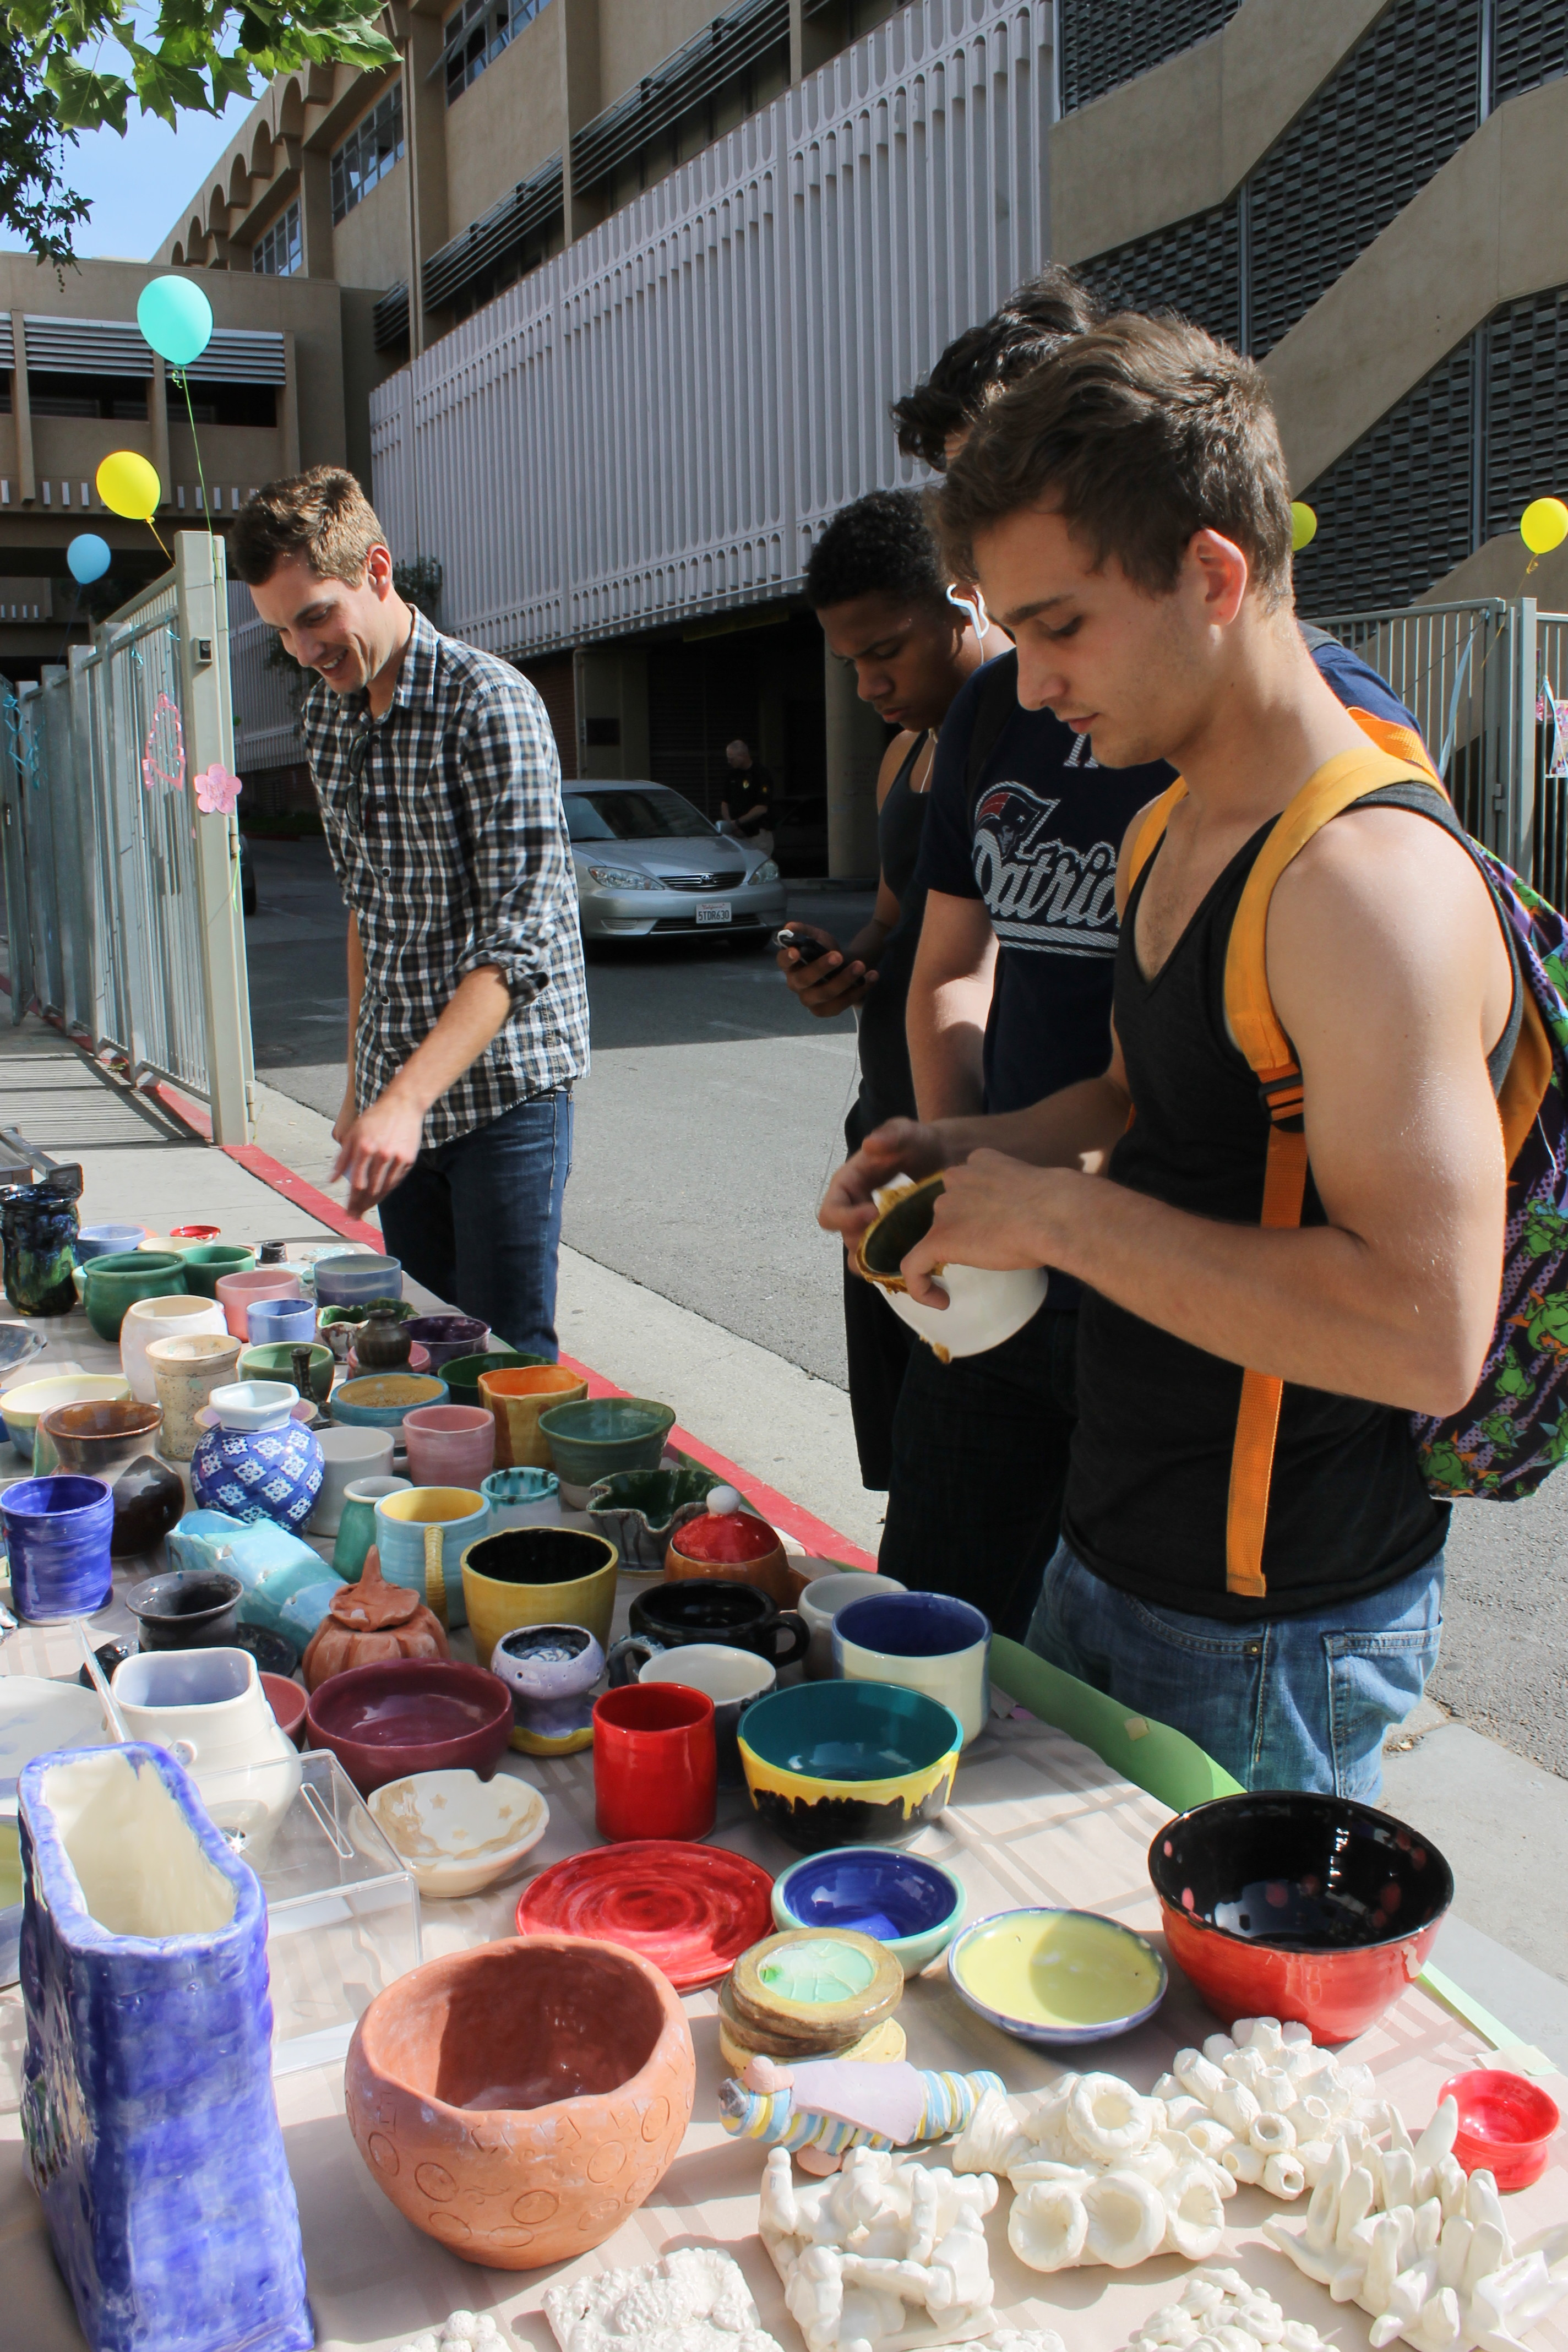 Ceramic goods were available for purchase at the Art Festival.